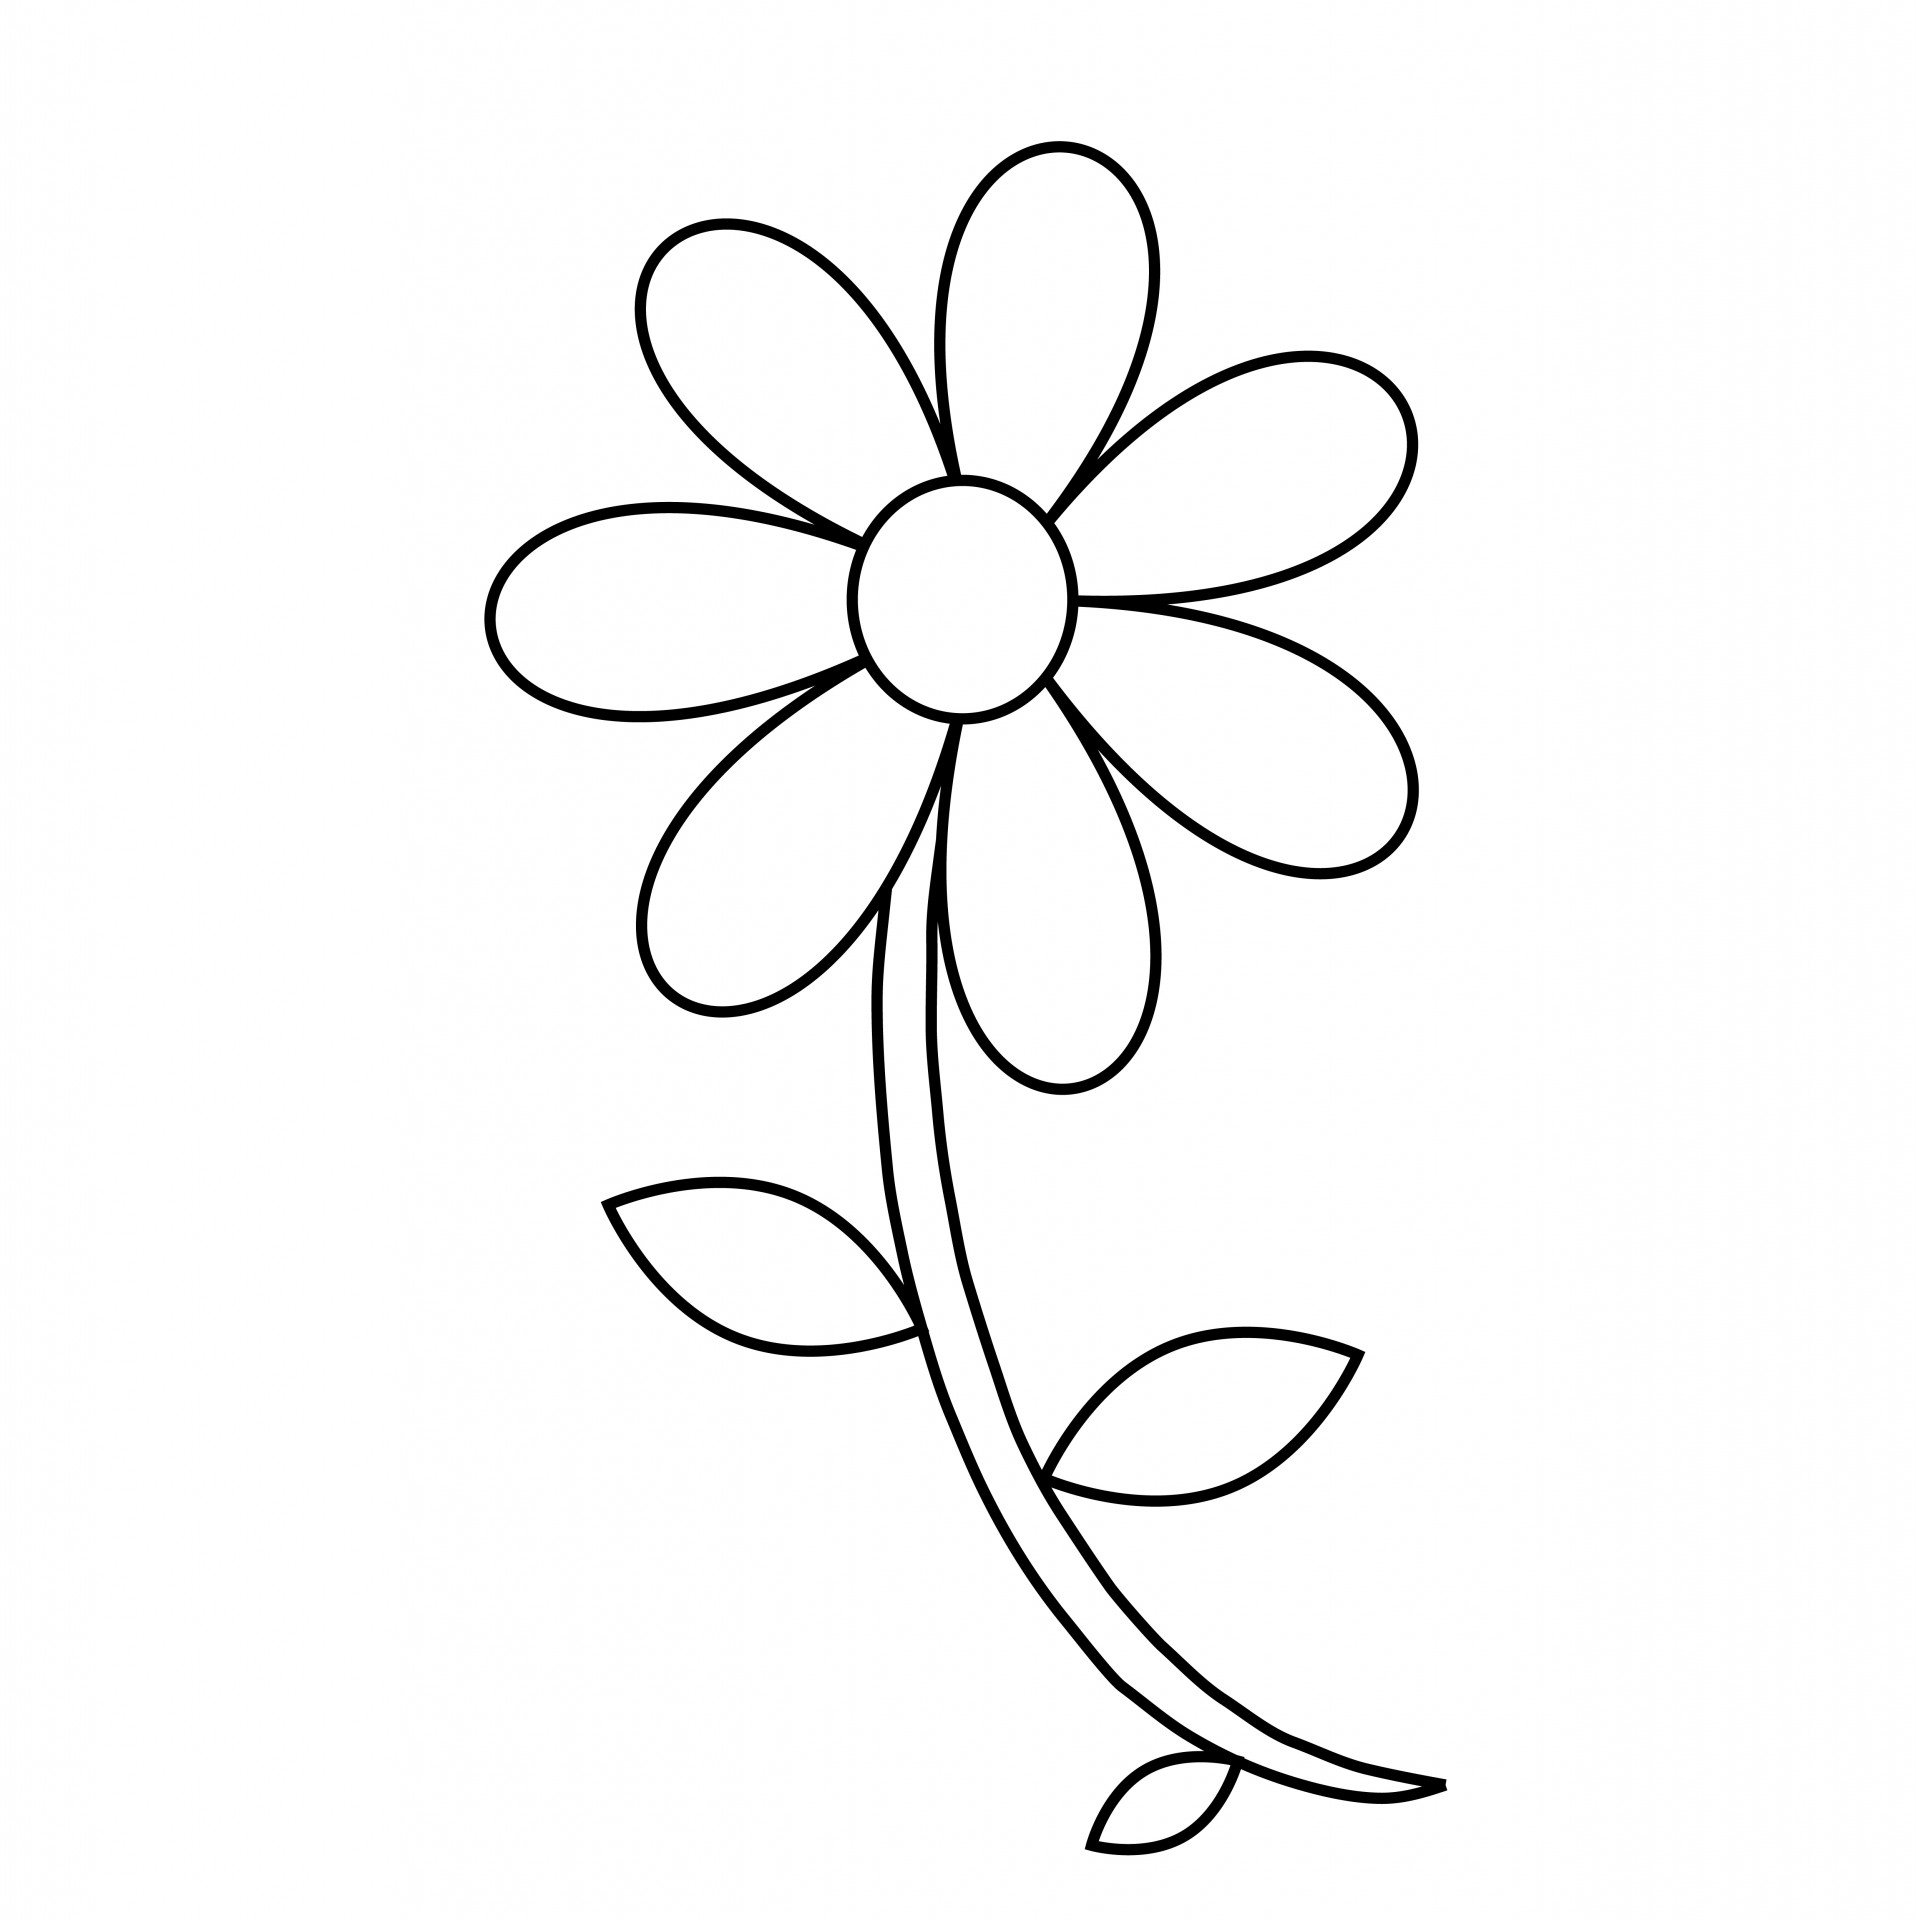 Free Simple Flower Outline, Download Free Clip Art, Free